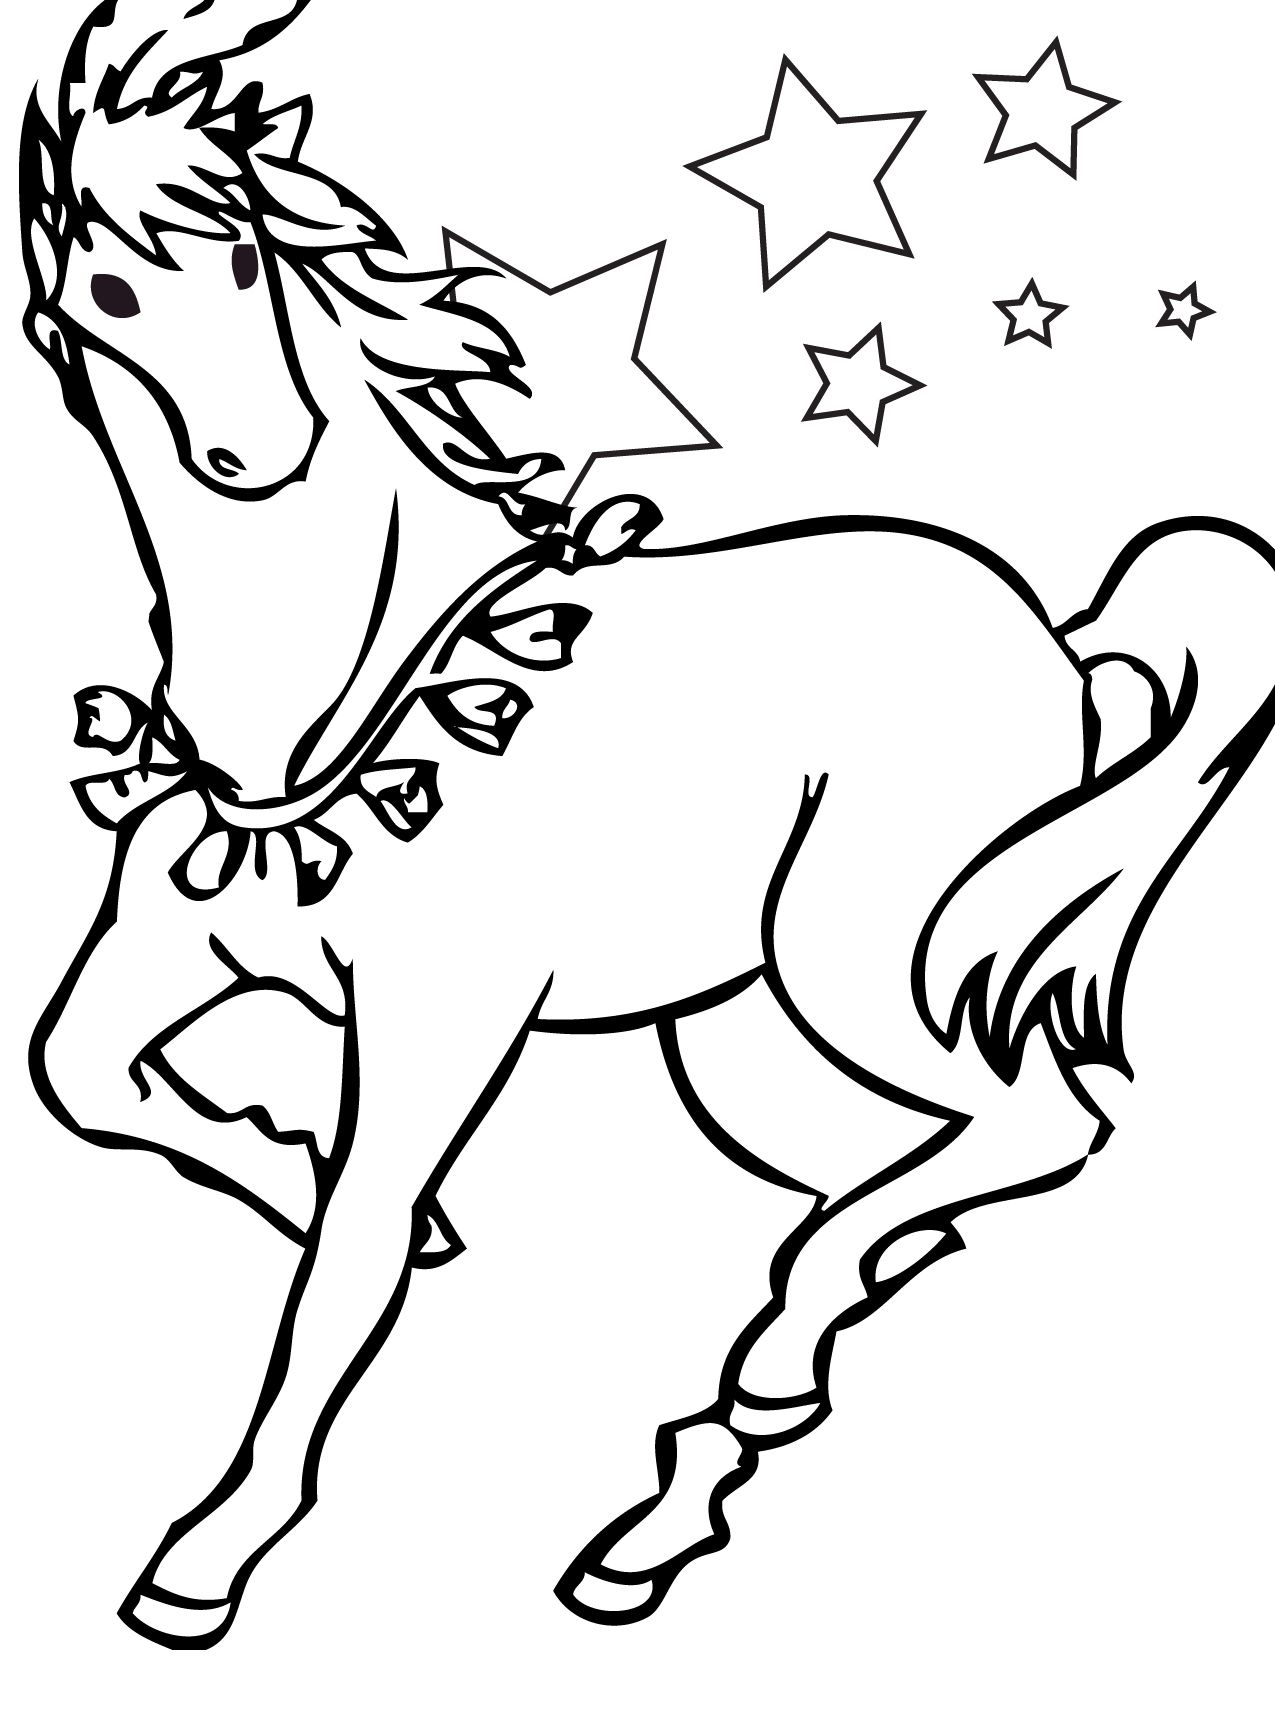 Planse De Colorat Cu Cai Horse Coloring Pages Horse Coloring Books Horse Coloring